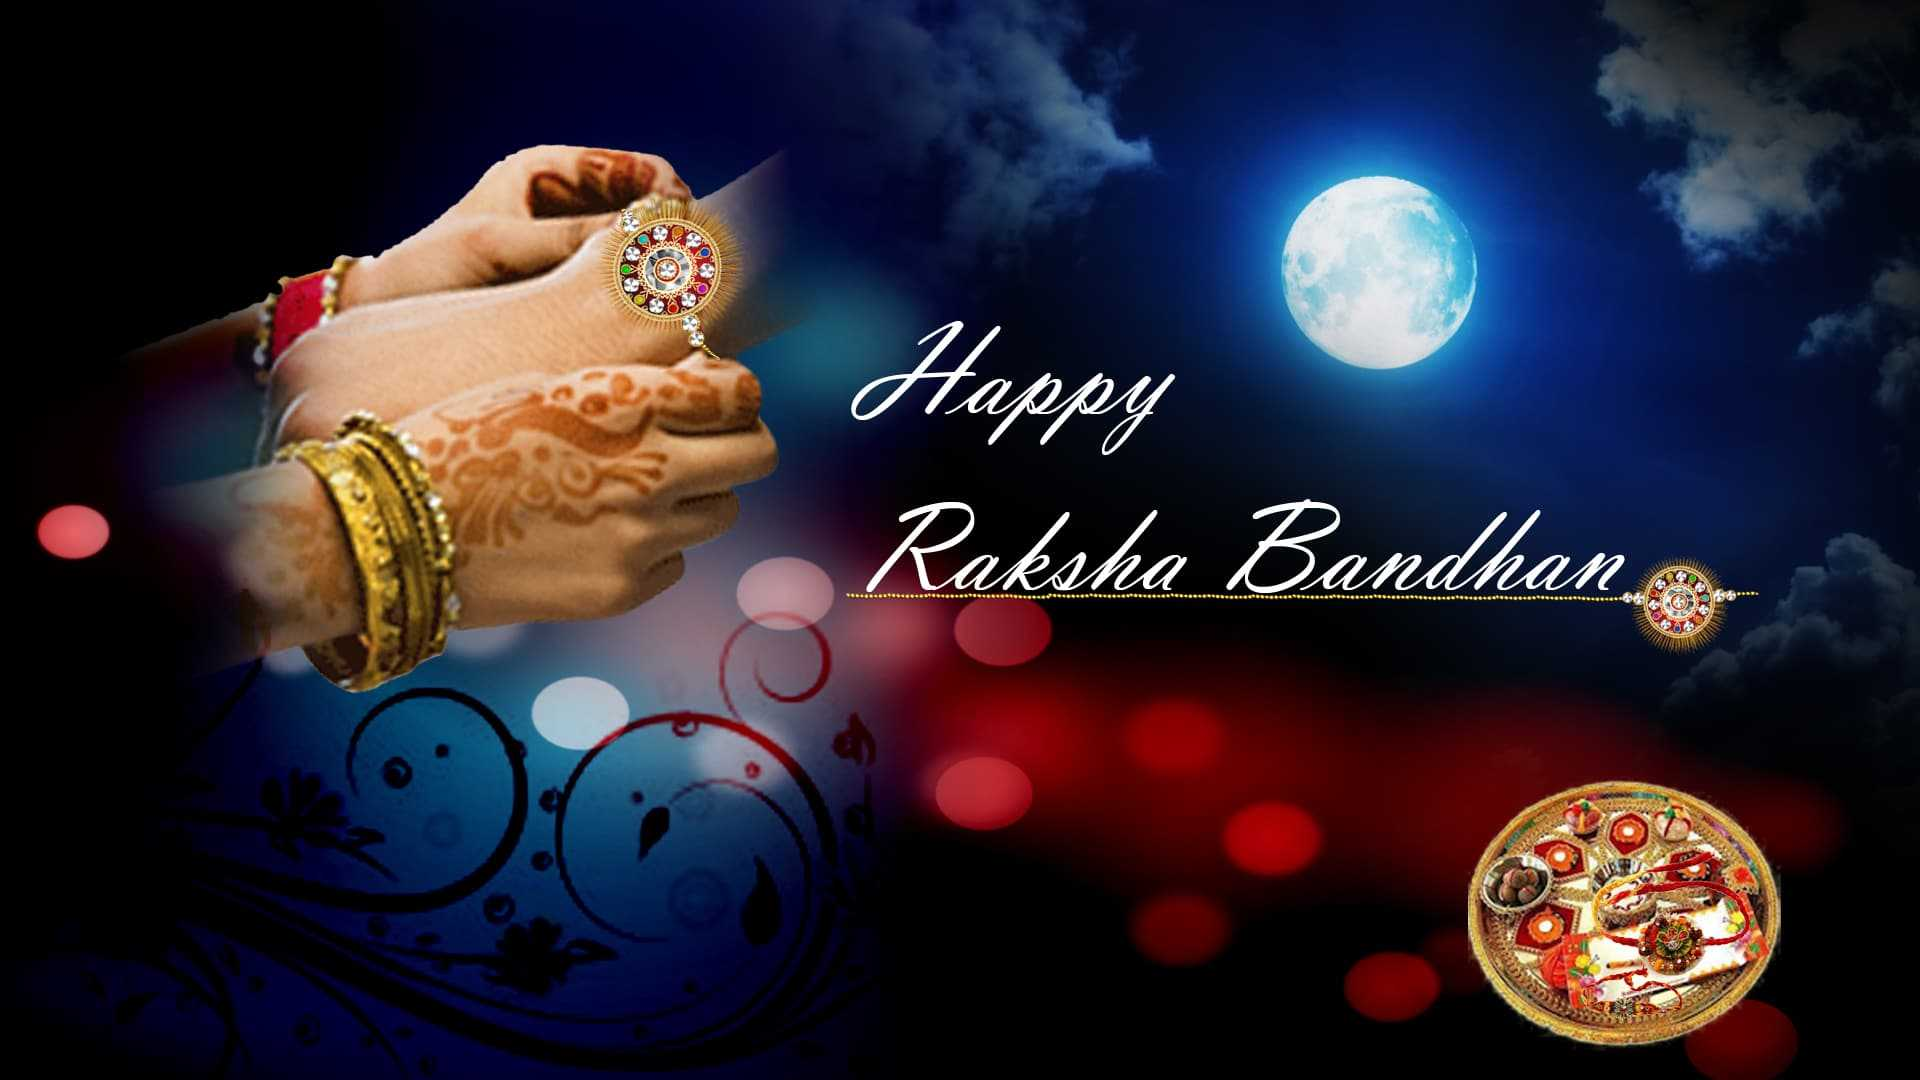 Raksha Bandhan Images Free Download 2017 Hd Rakhi